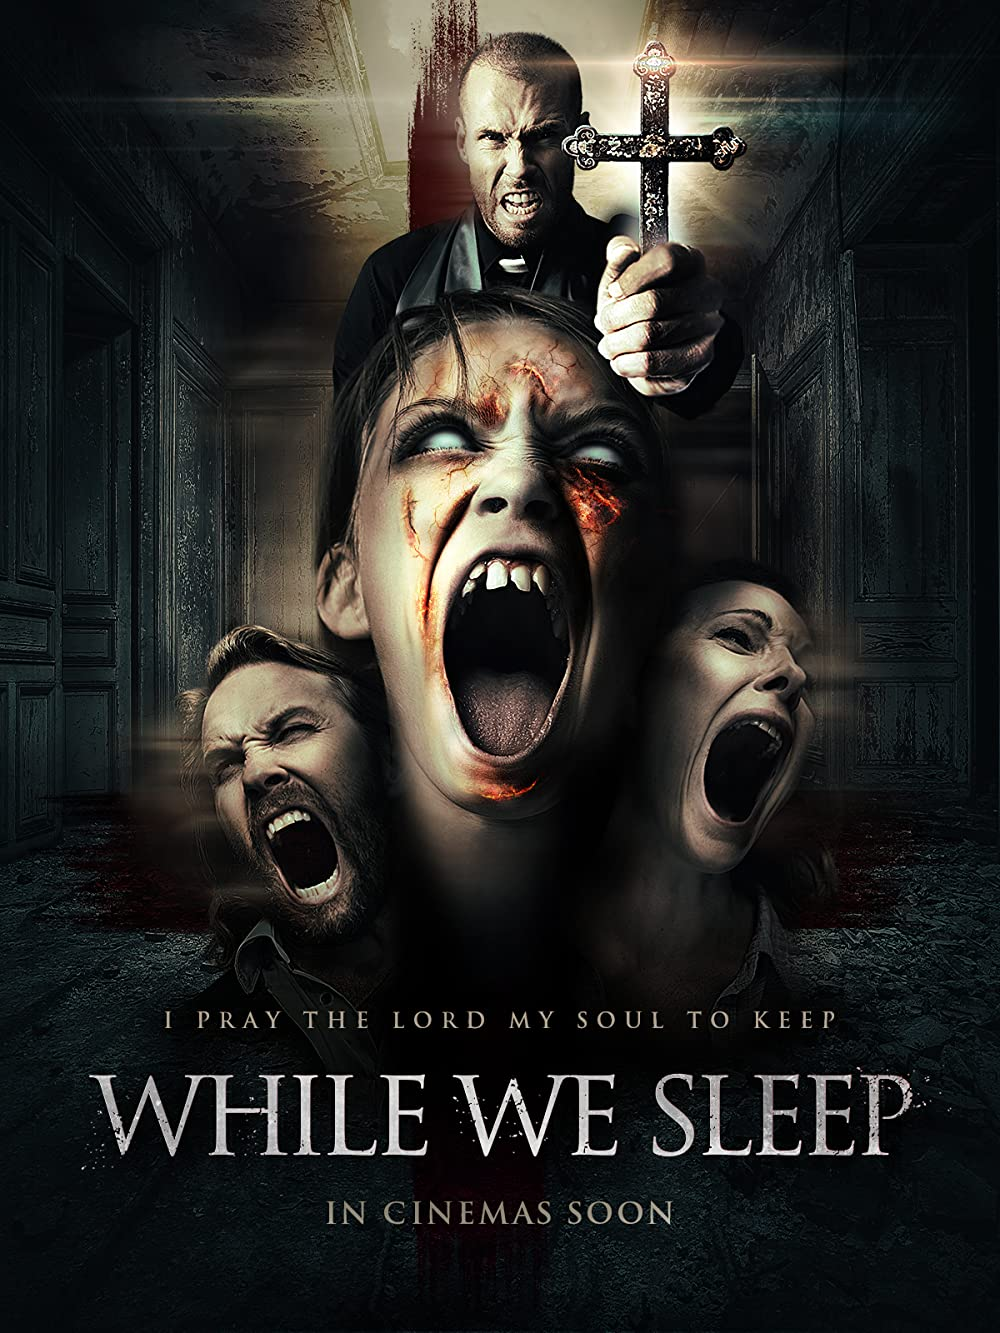 While We Sleep (2021) Hindi (Voice Over) Dubbed+ English [Dual Audio] WebRip 720p [1XBET]